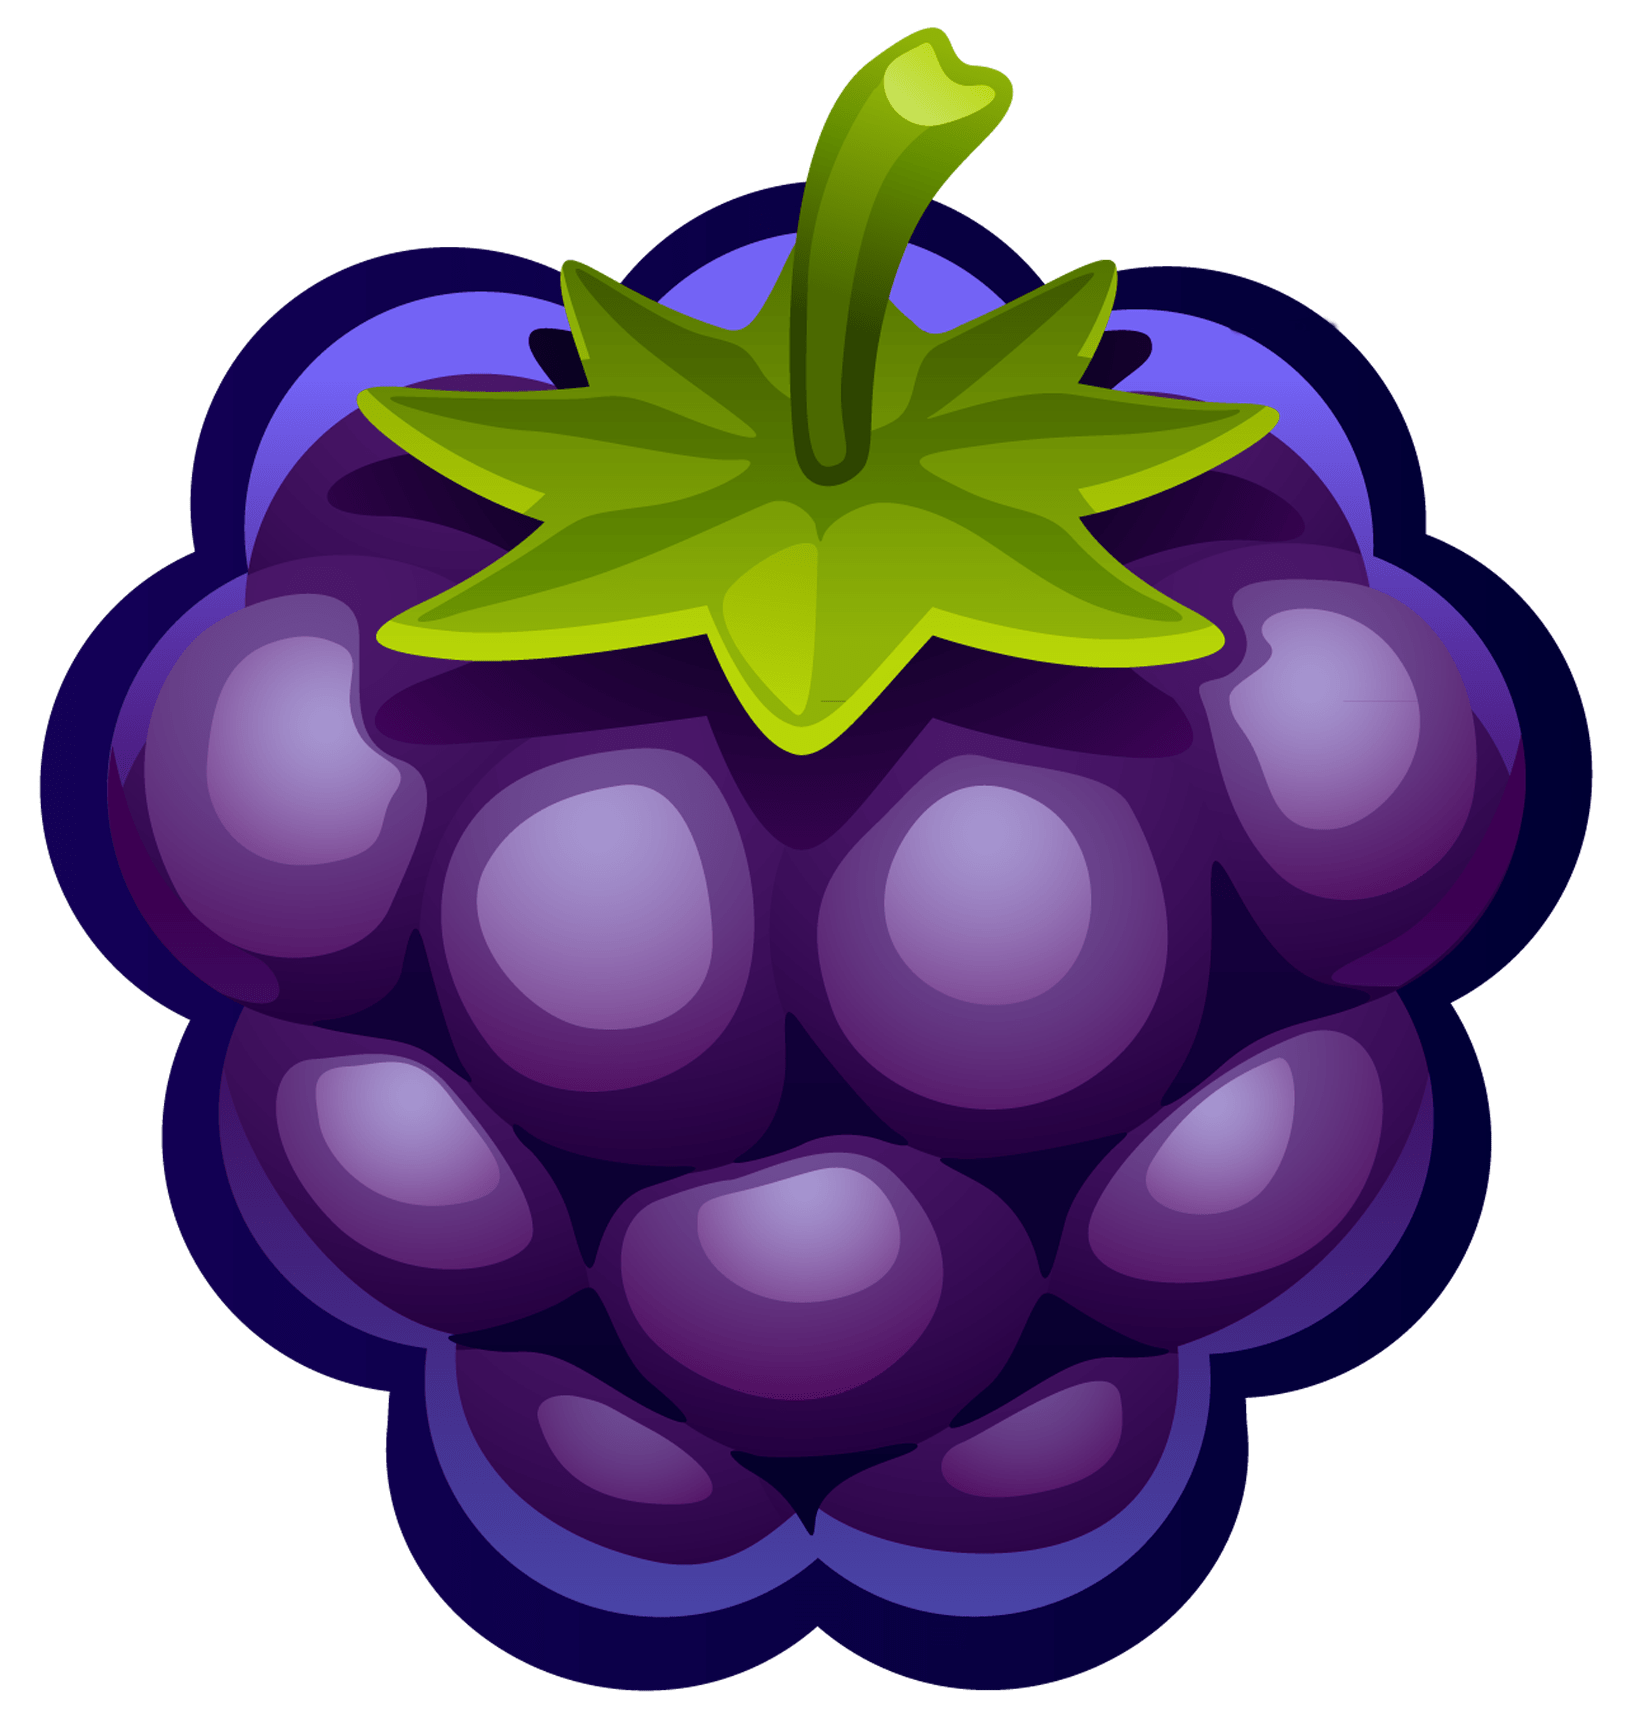 svg royalty free stock Blueberry clipart. Transparent png stickpng